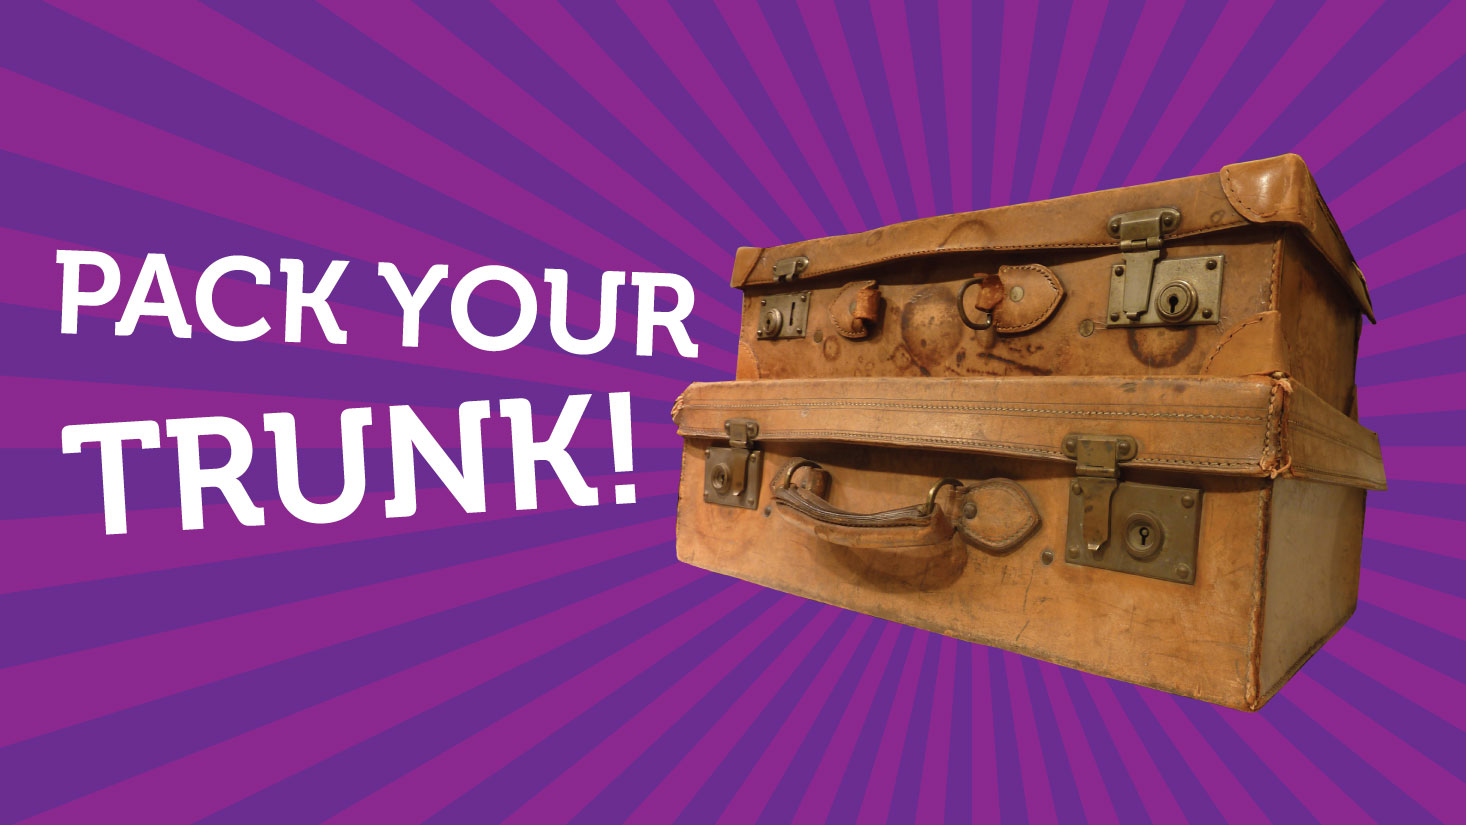 Pack Your Trunk!